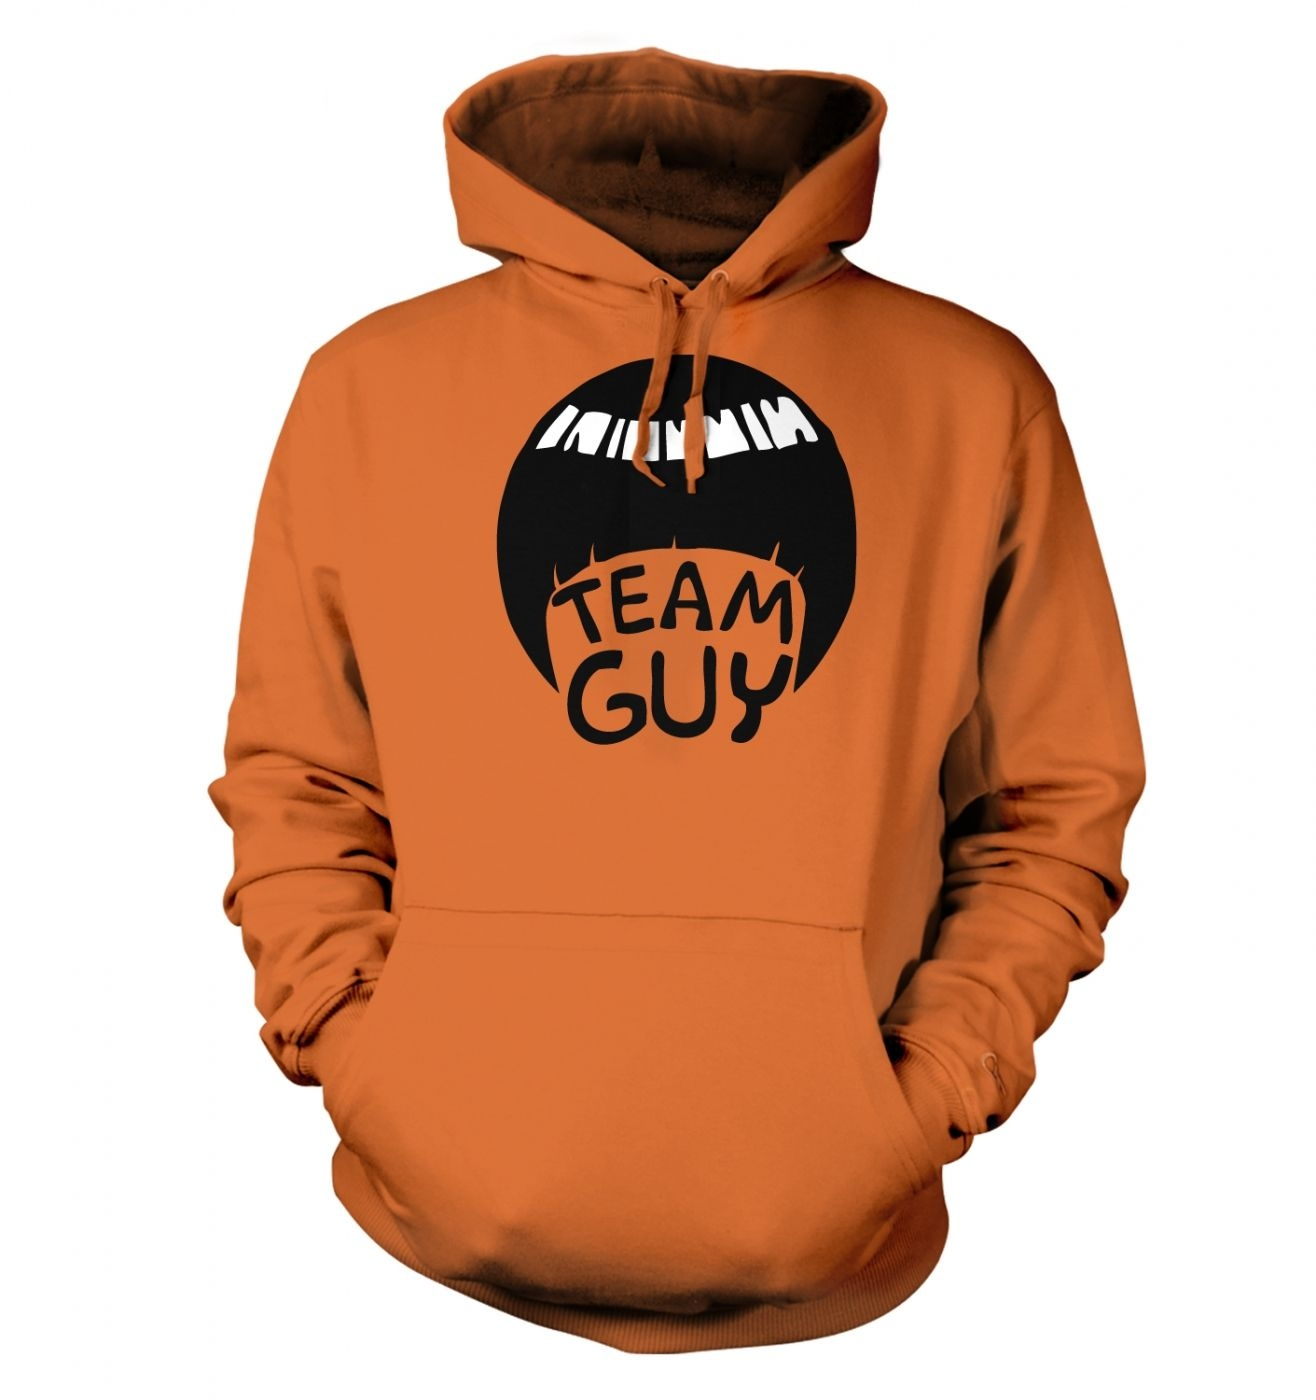 Team Guy - Adult Hoodie